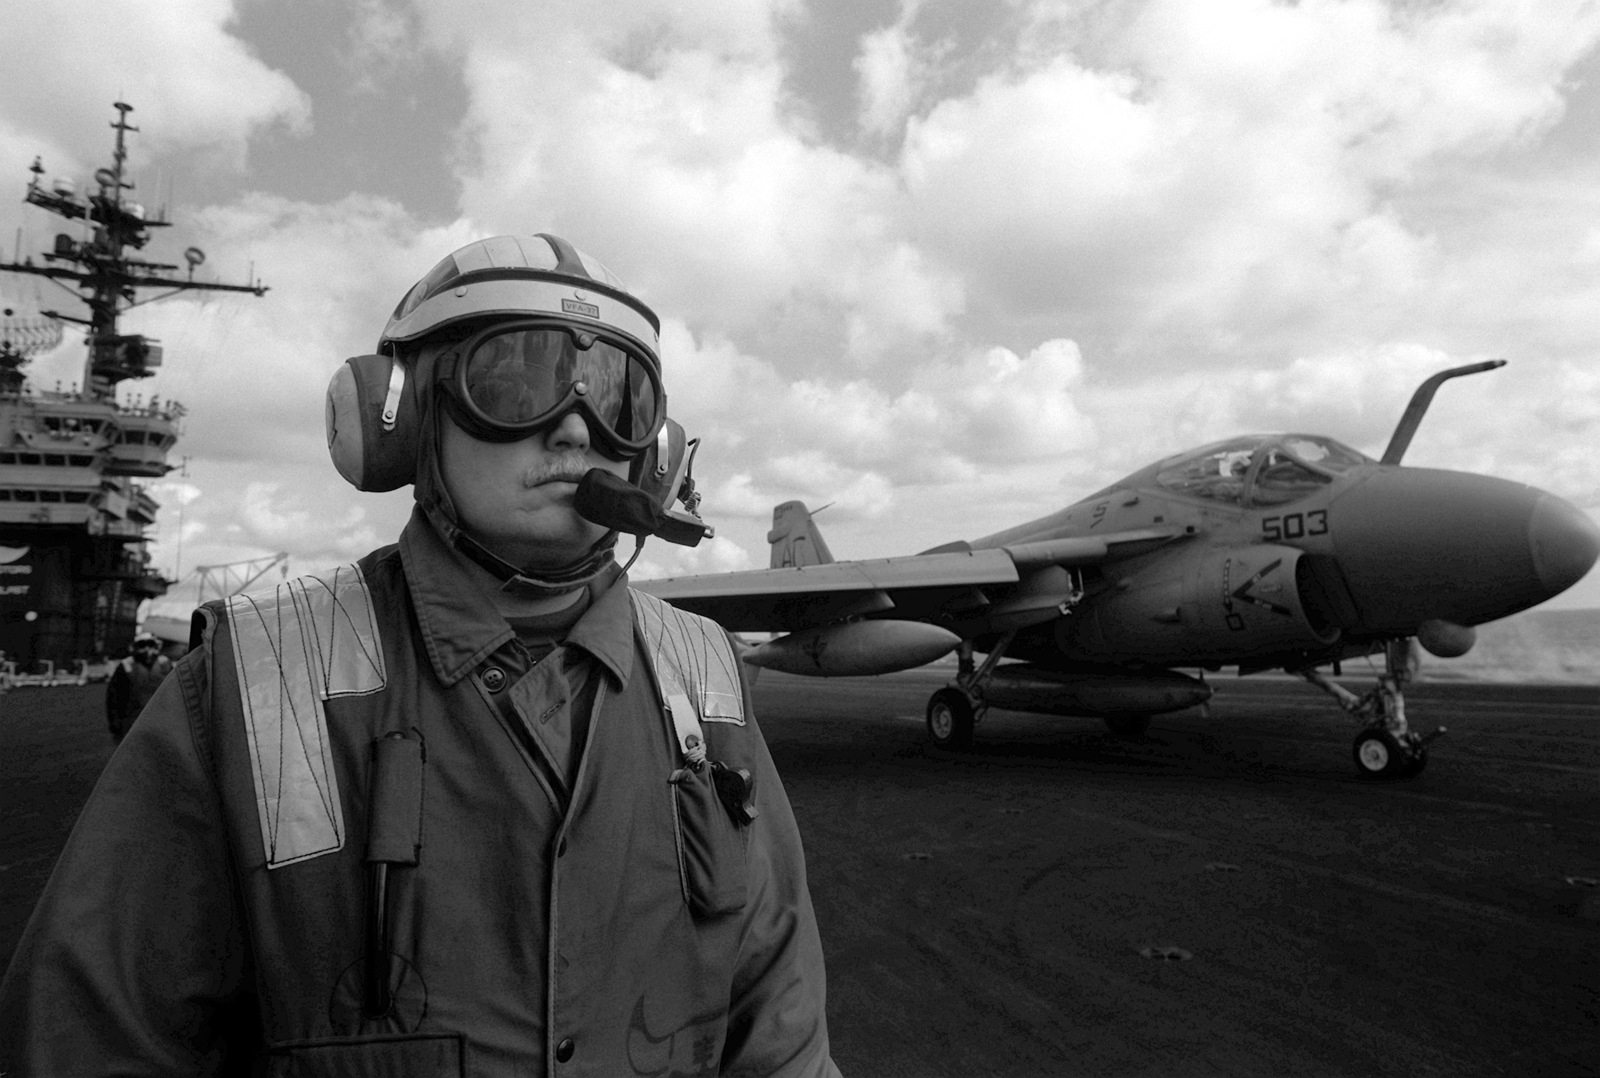 A flight deck member stands by as an Attack Squadron 75 (VA-75) A-6E Intruder aircraft is readied for launch during flight operations aboard the aircraft carrier USS JOHN F. KENNEDY (CV-67)